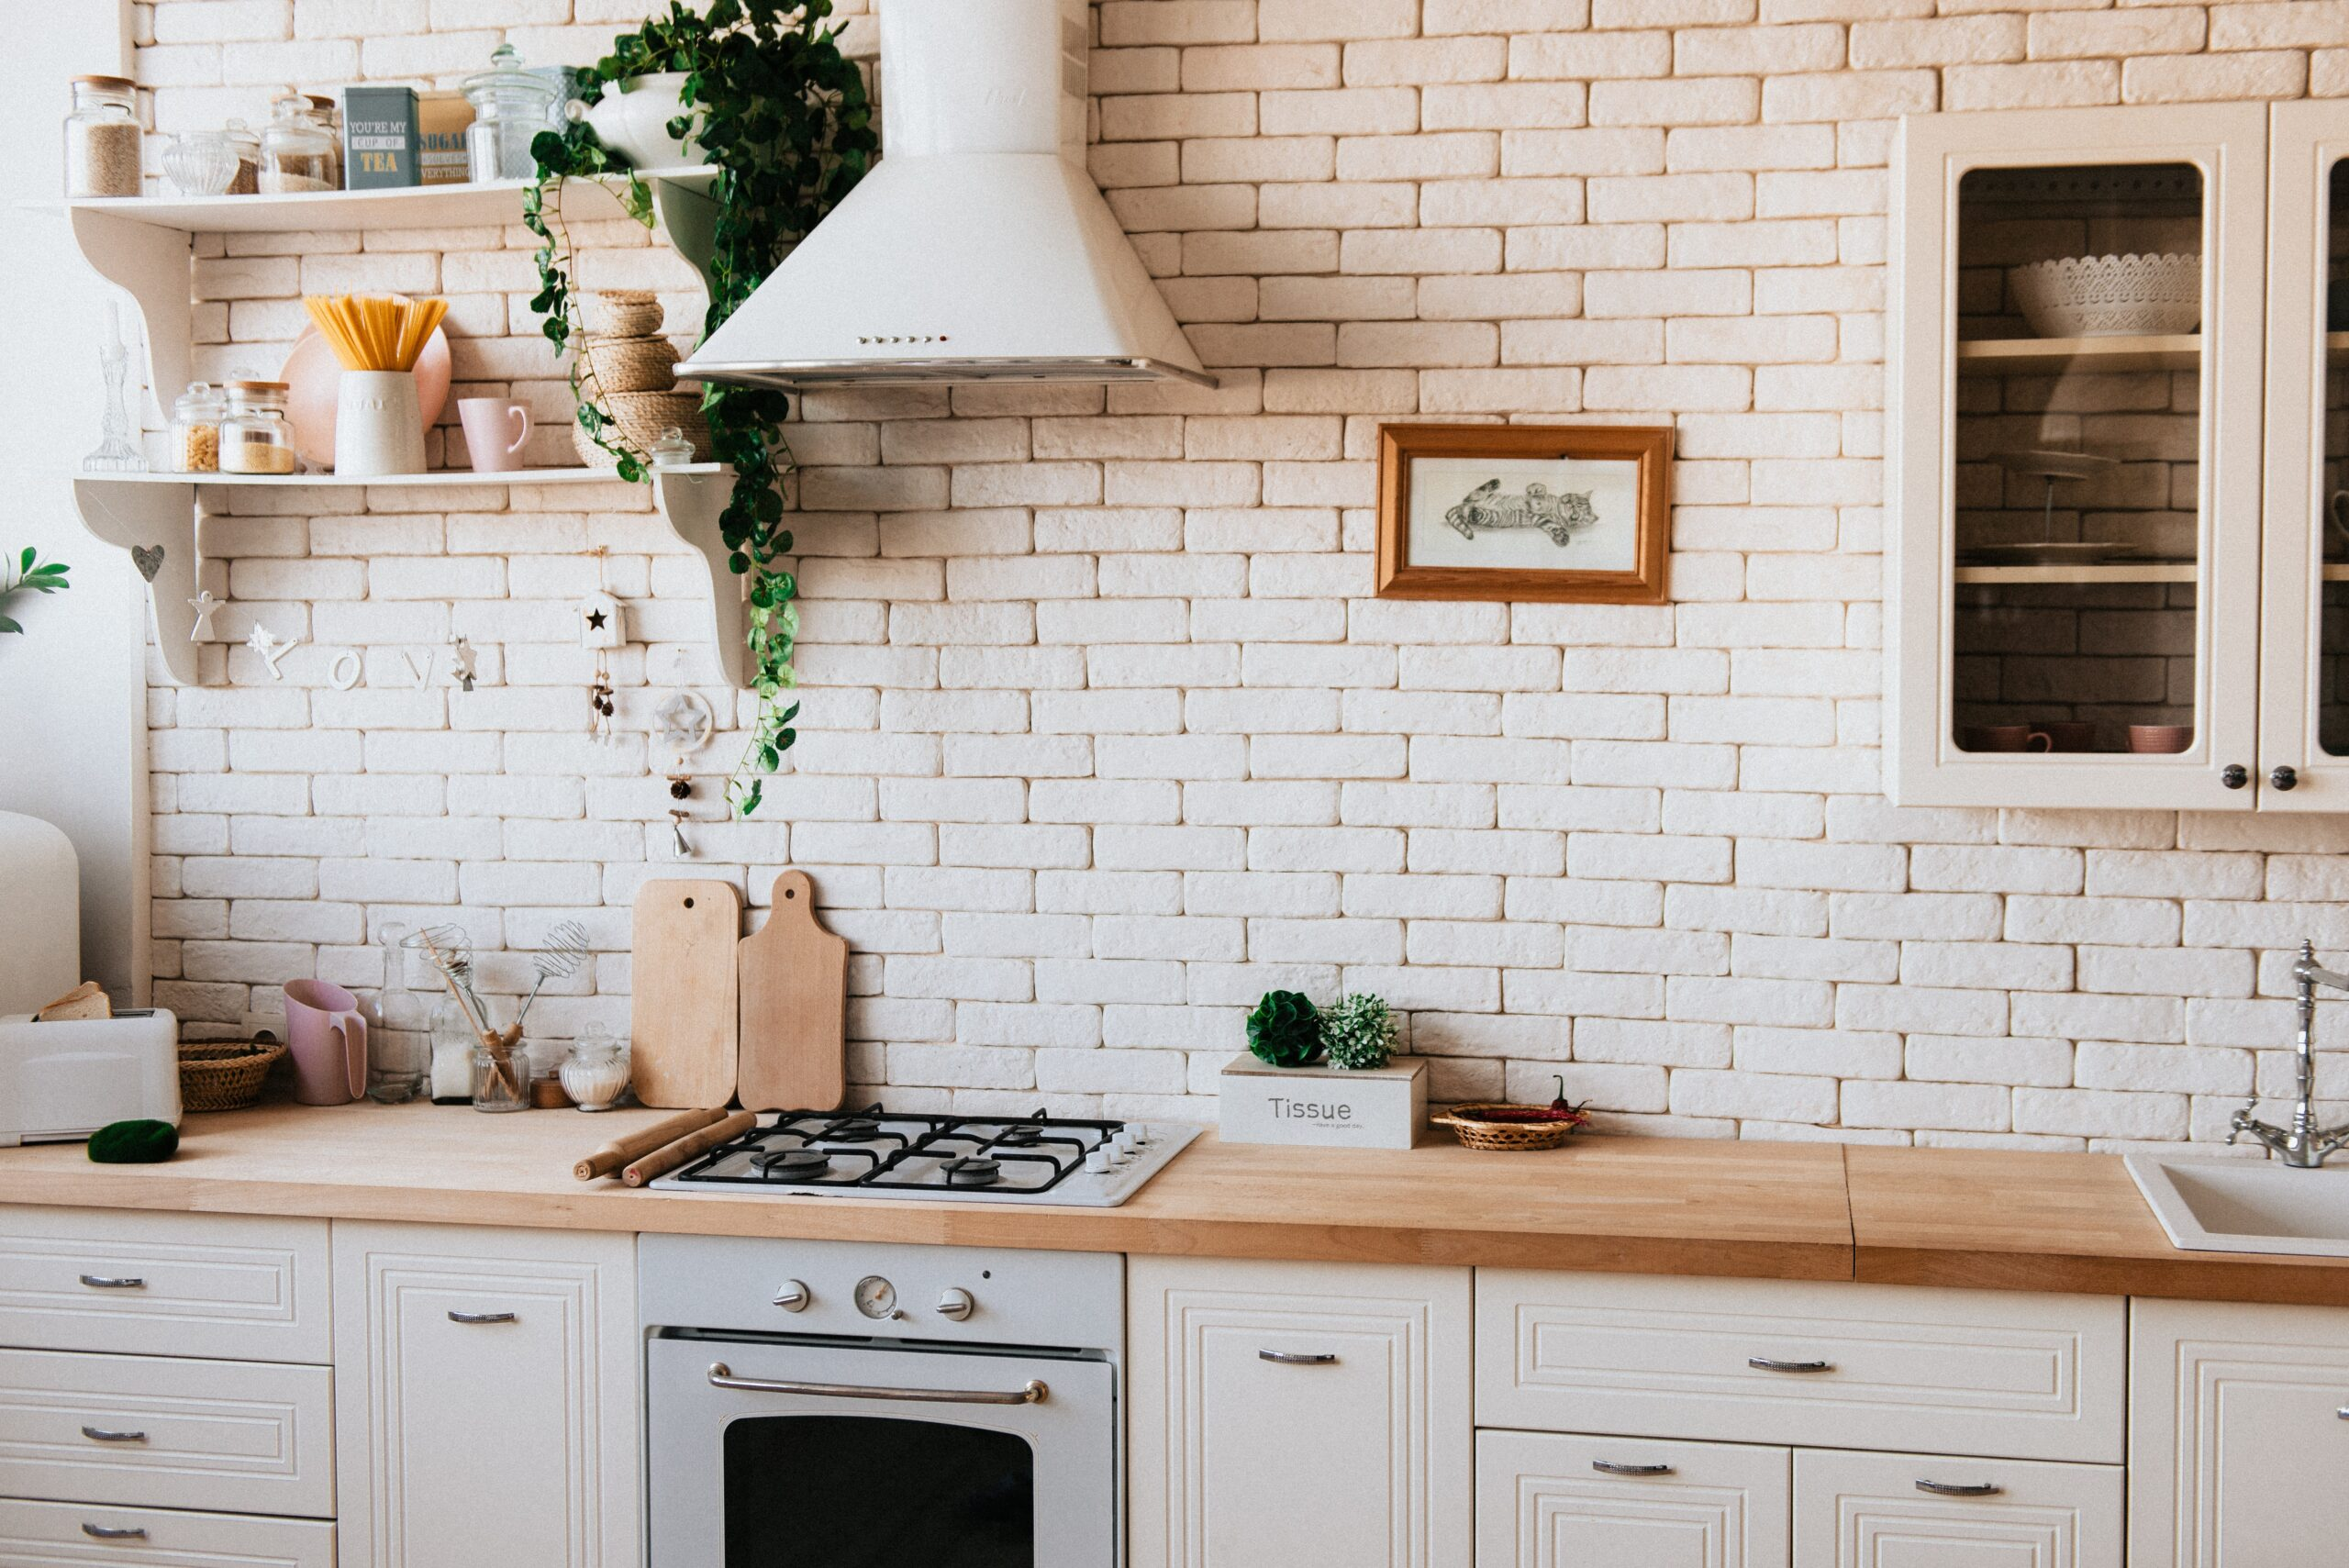 Top Amazon UK Sellers for Home and Kitchen